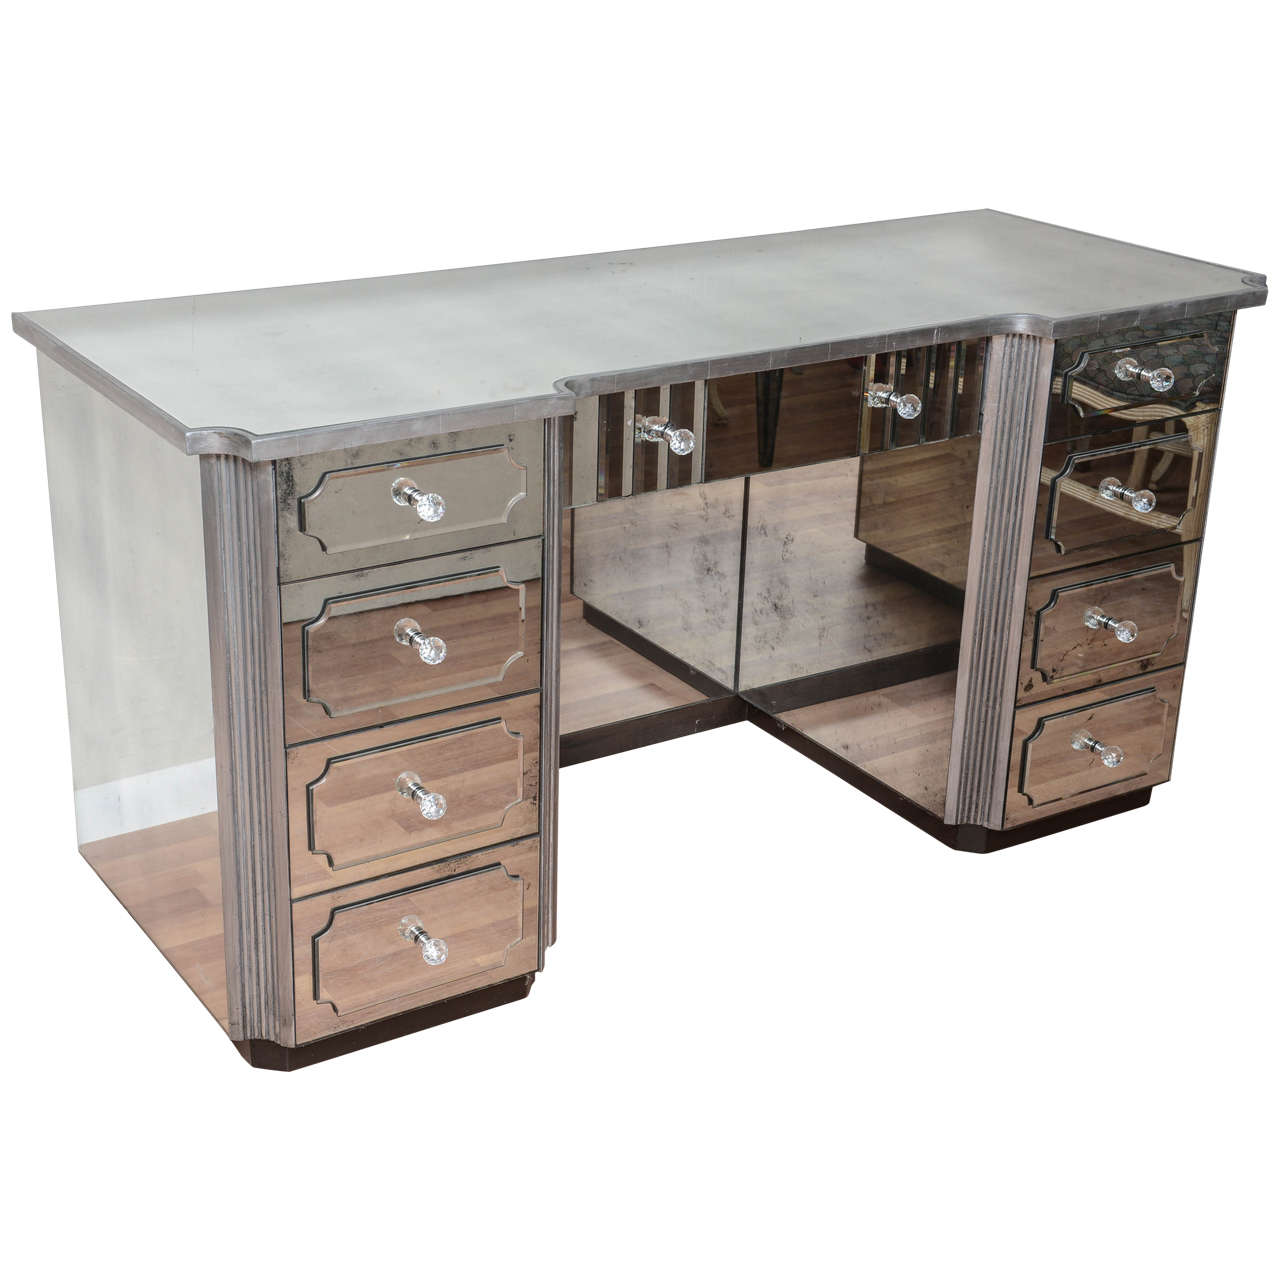 Superb mirrored dressing table or vanity with nine drawers